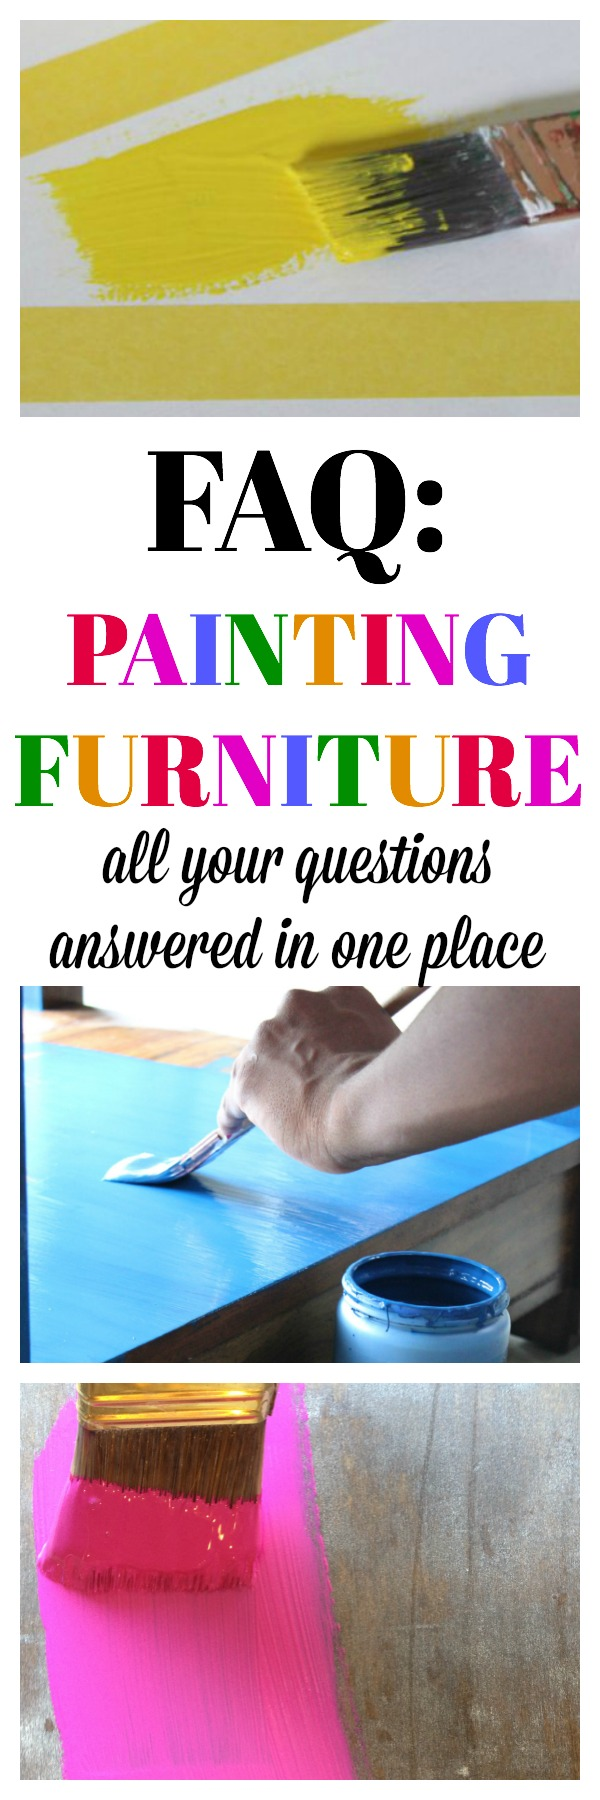 FAQ: Painting Furniture | Every question you have about painting furniture answered in one place! Great information for beginner furniture painters!